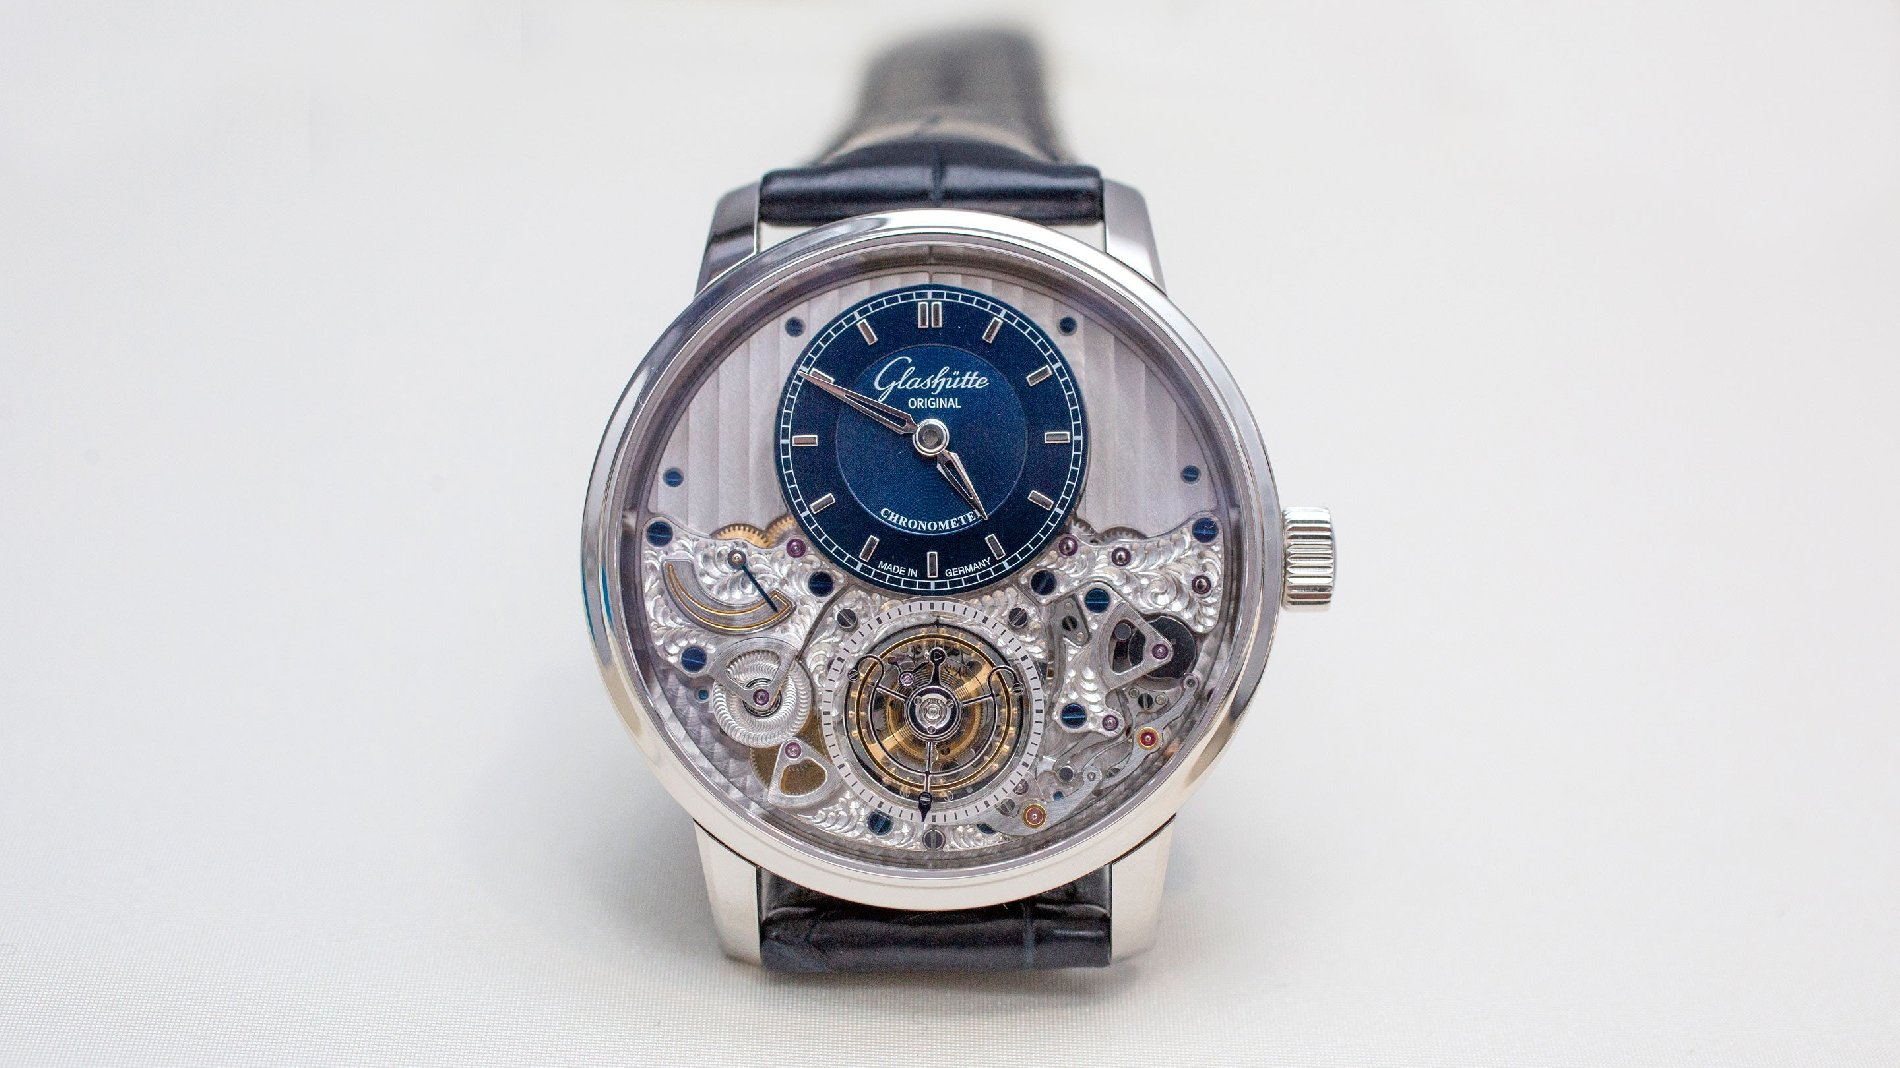 Новые Original Senator Chronometer Tourbillon Limited Edition от Glashütte